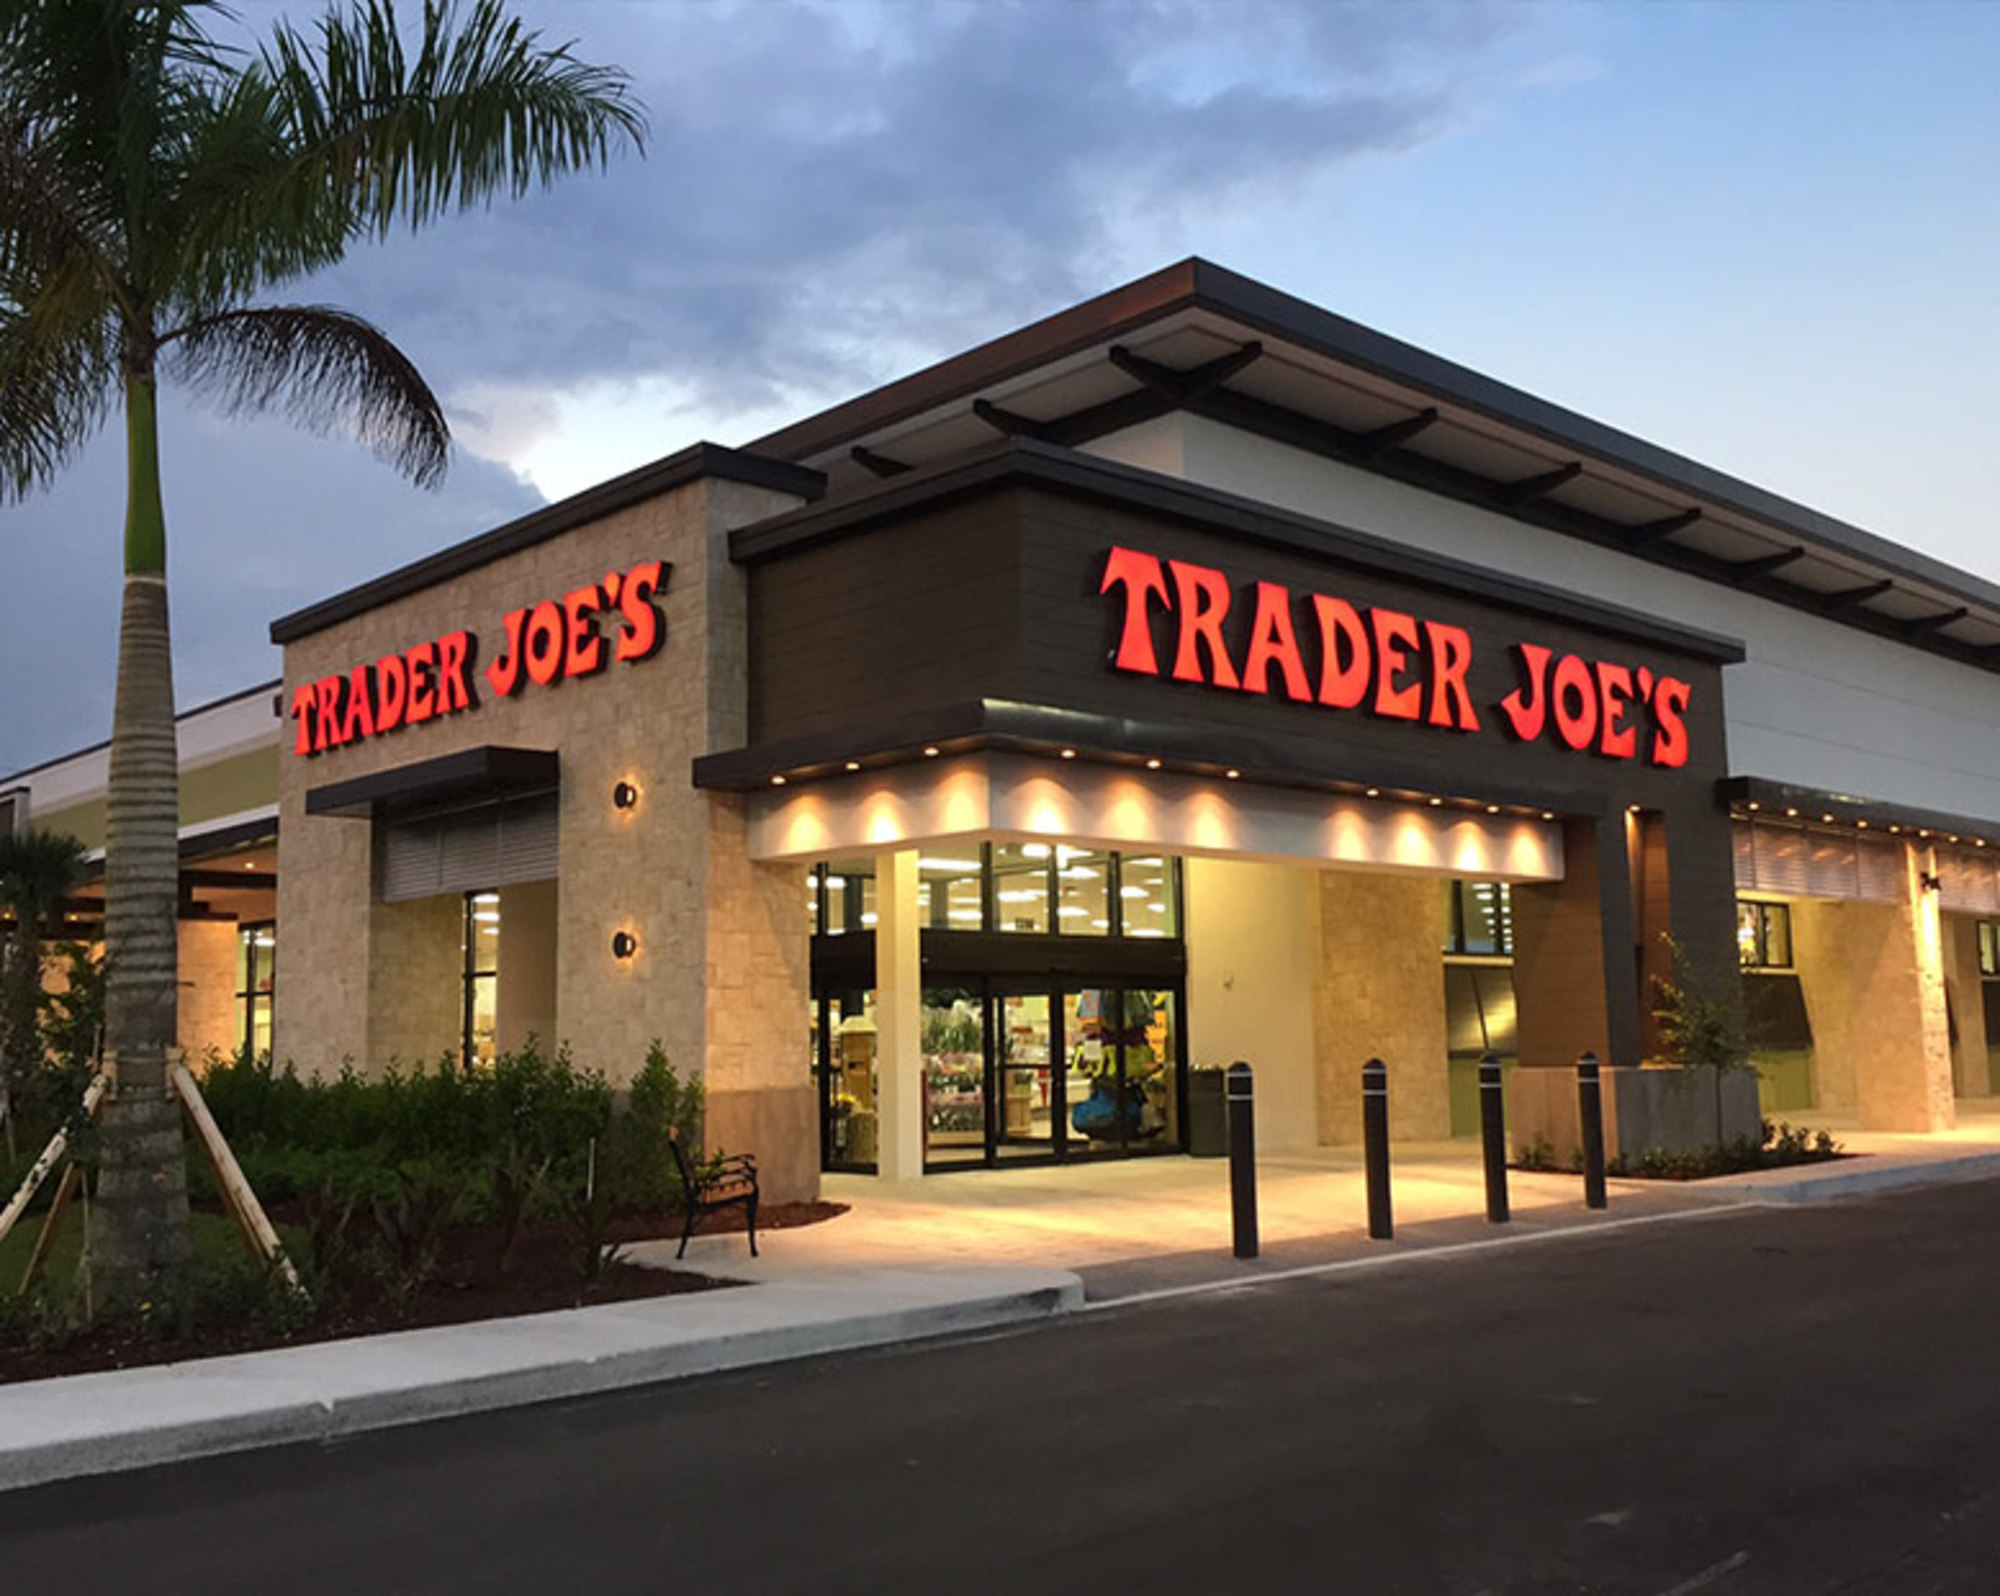 Trader Joe's is killing grocery delivery program even as Walmart, Whole Foods and Kroger spend billions to win the online grocery wars